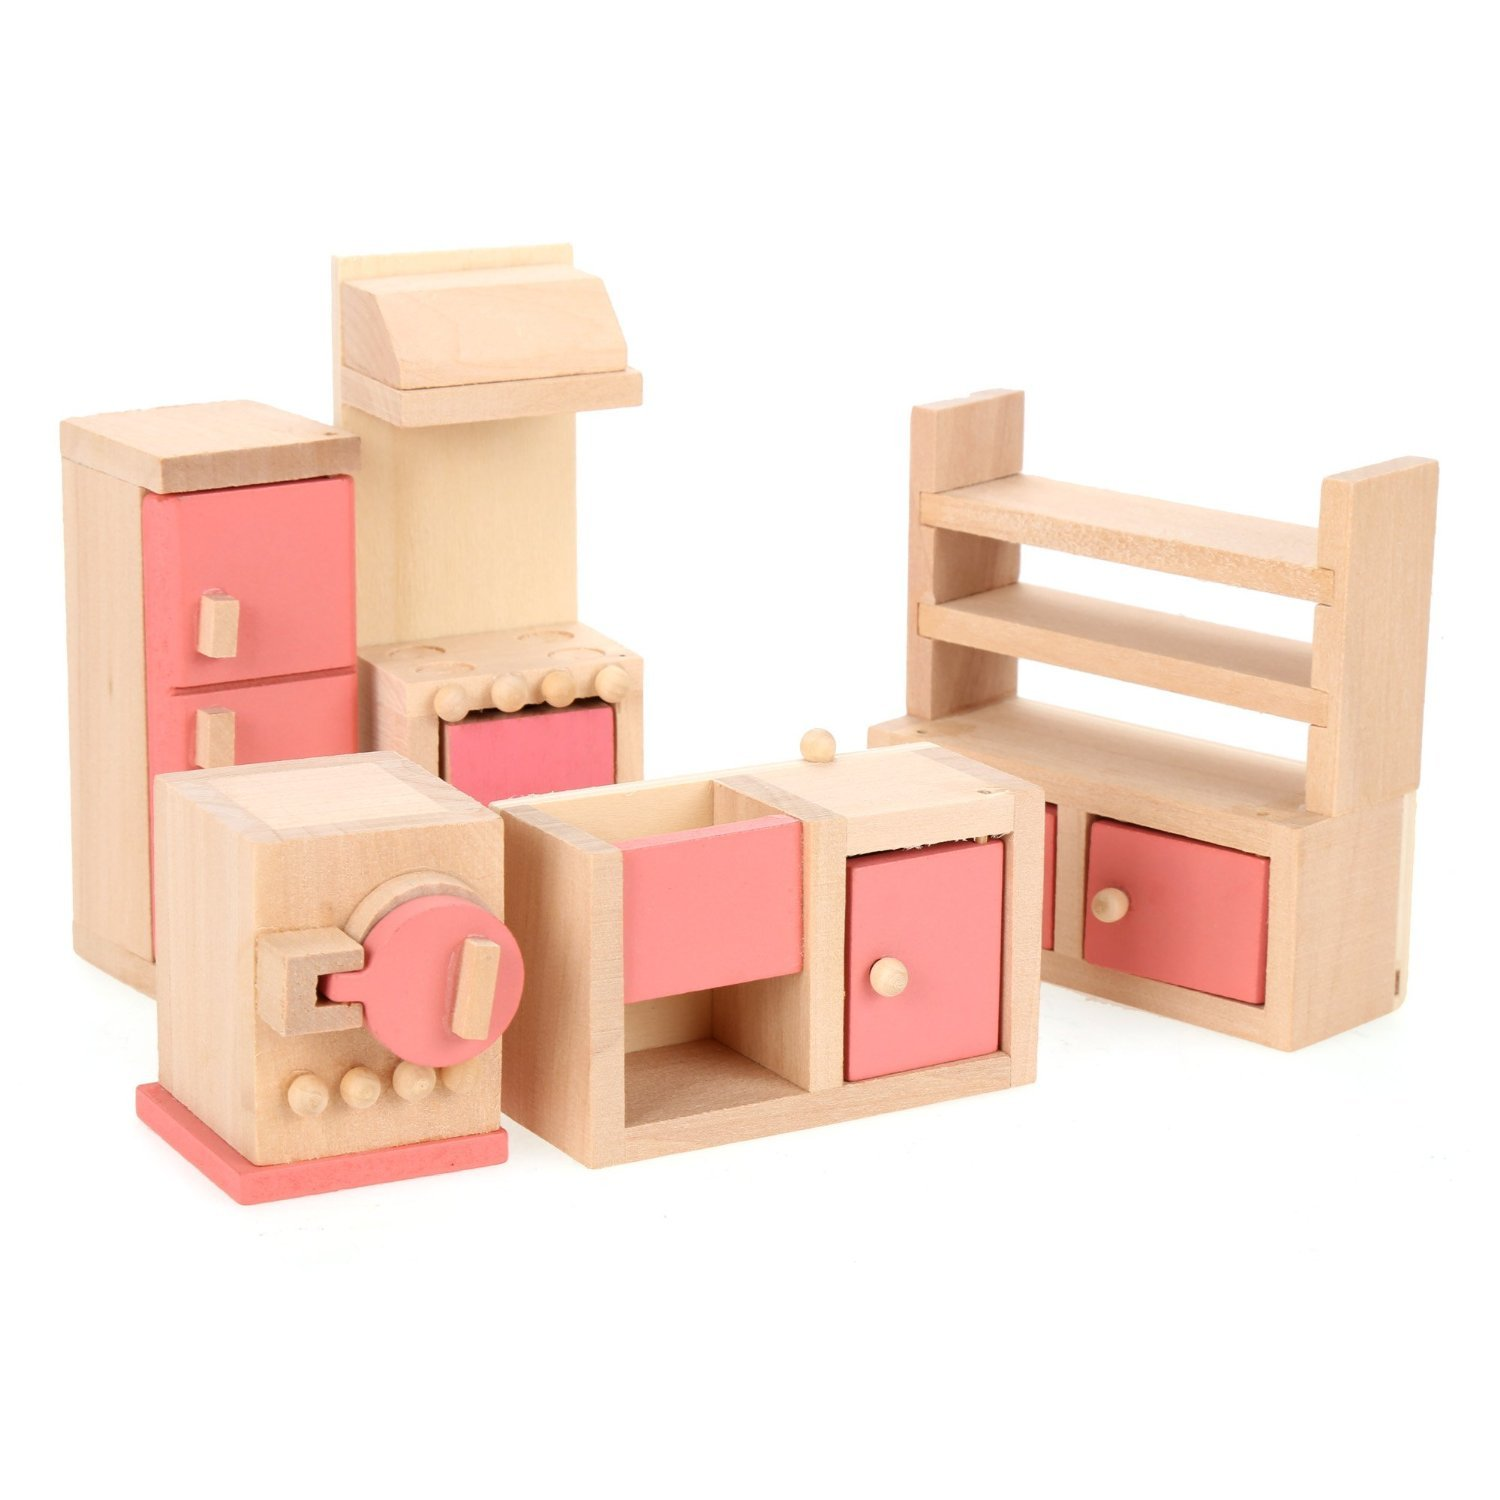 wooden barbie doll house furniture. Wooden Barbie Doll House Furniture 0